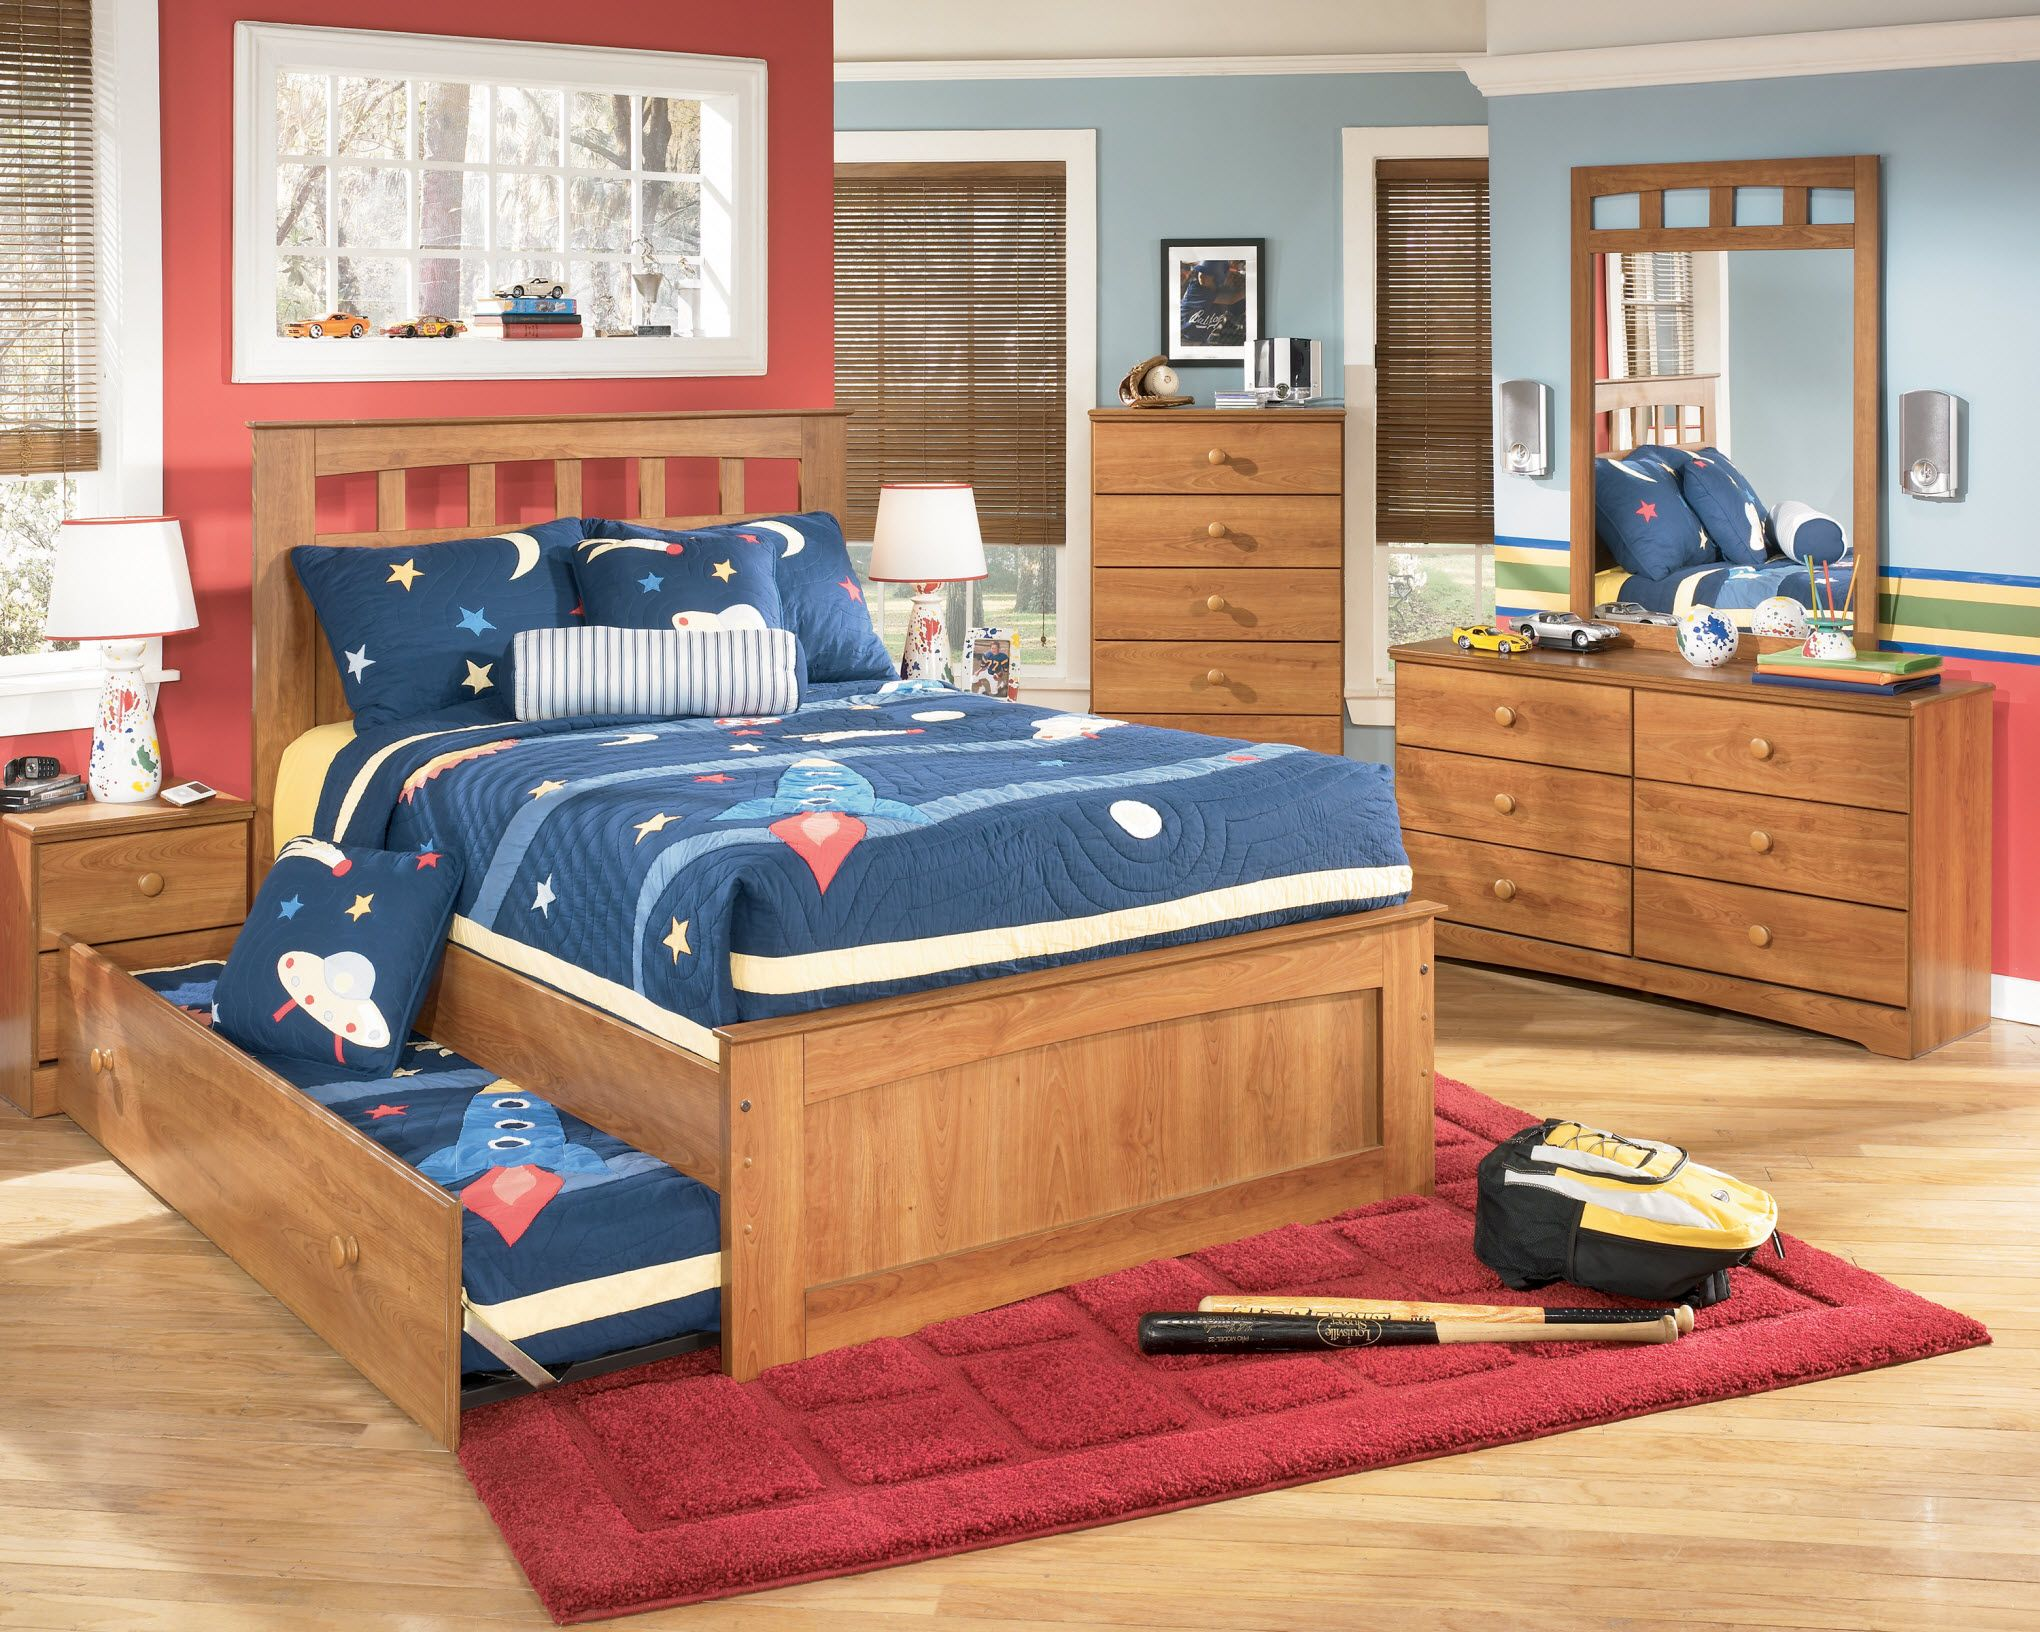 Cool Teenage Boys Bedroom Furniture Sets | Bedroom | Pinterest ...